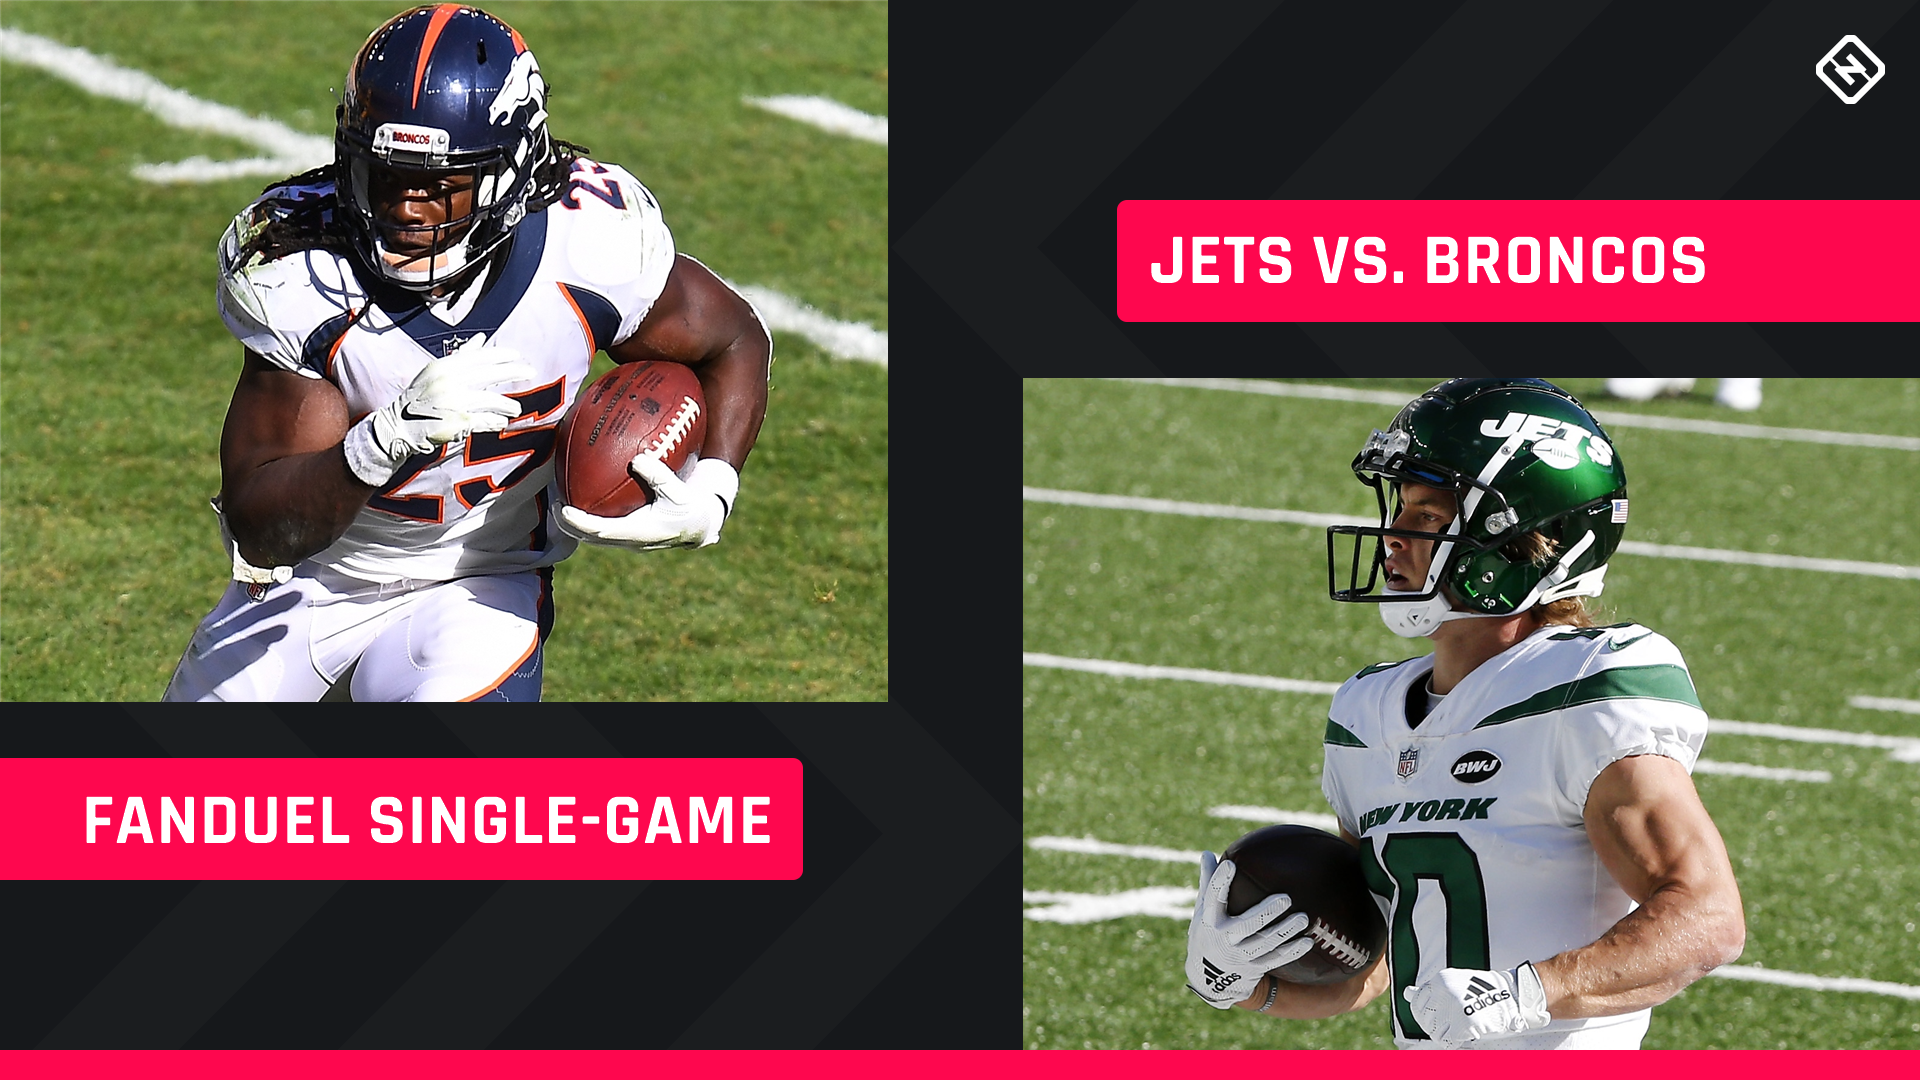 Thursday Night Football FanDuel Picks: NFL DFS lineup advice for Week 4 Jets-Broncos single-game tournaments